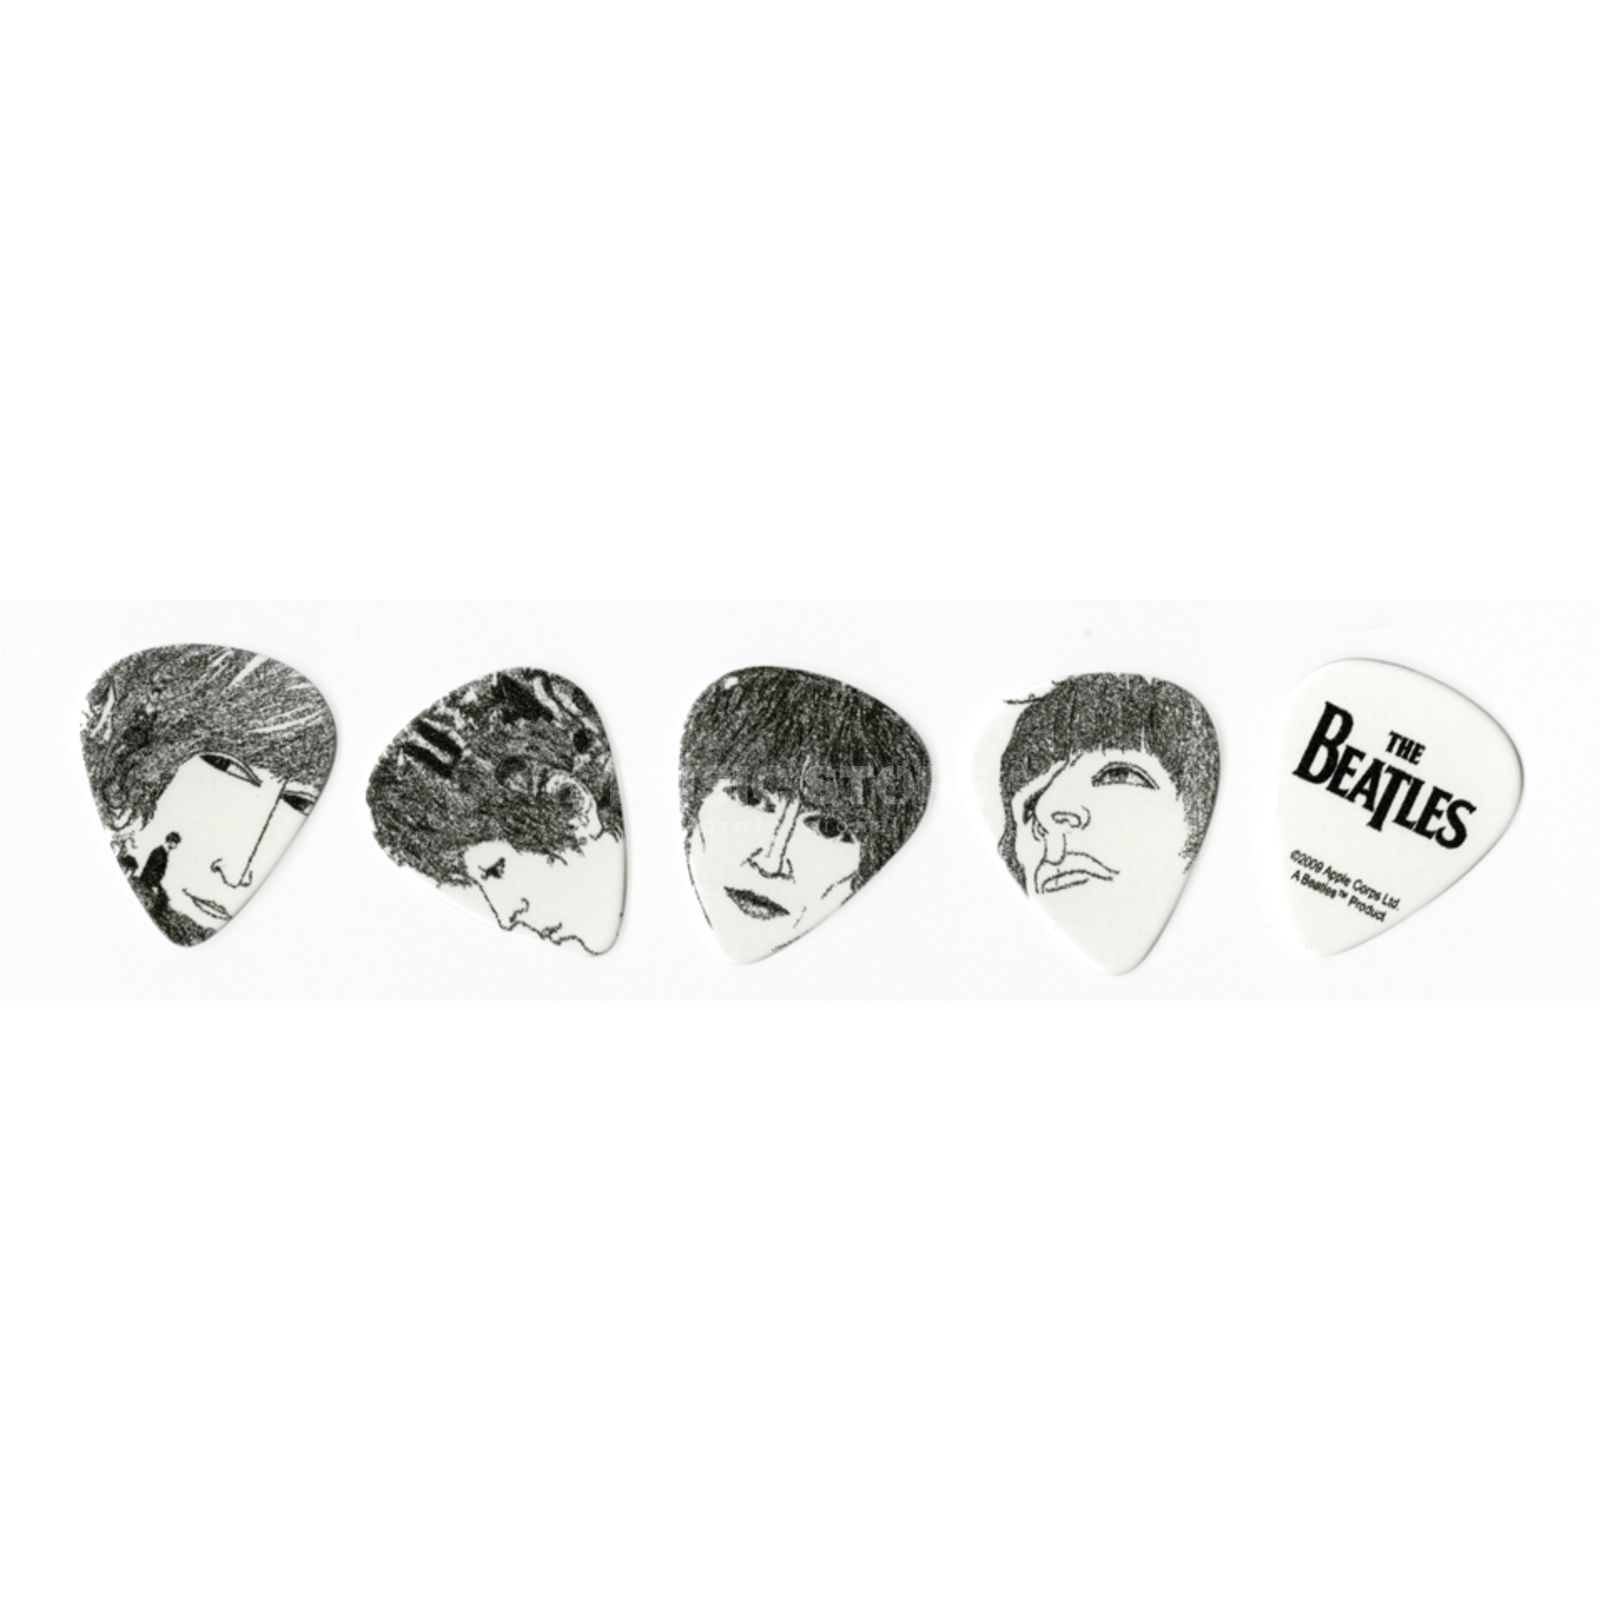 D'Addario Planet Waves Beatles Picks Revolver 10-pack medium, 1CWH4-10B1 Product Image